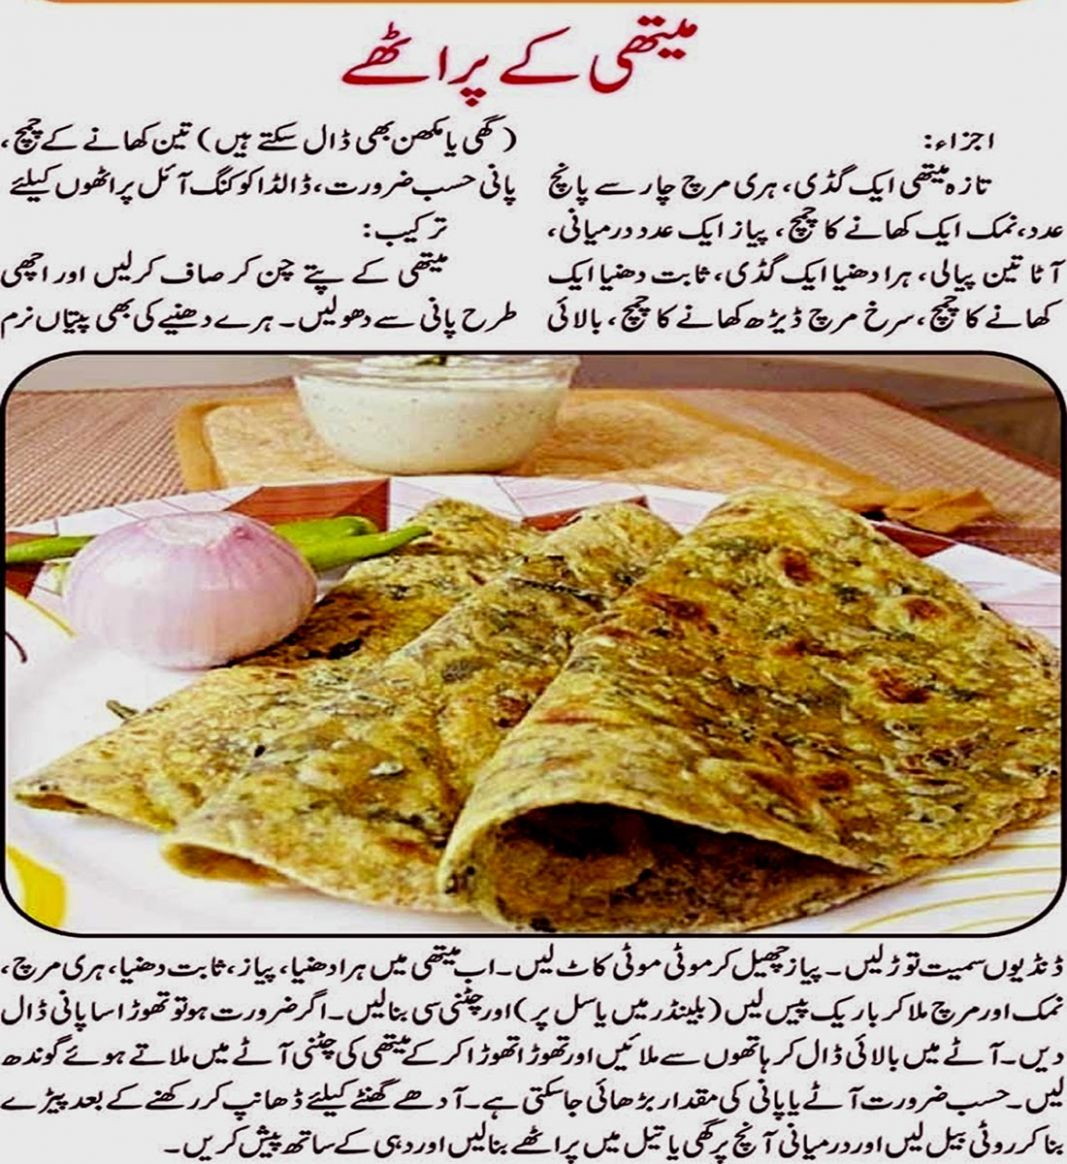 Foods Recipes In Urdu | Meri Urdu - Food Recipes In Urdu